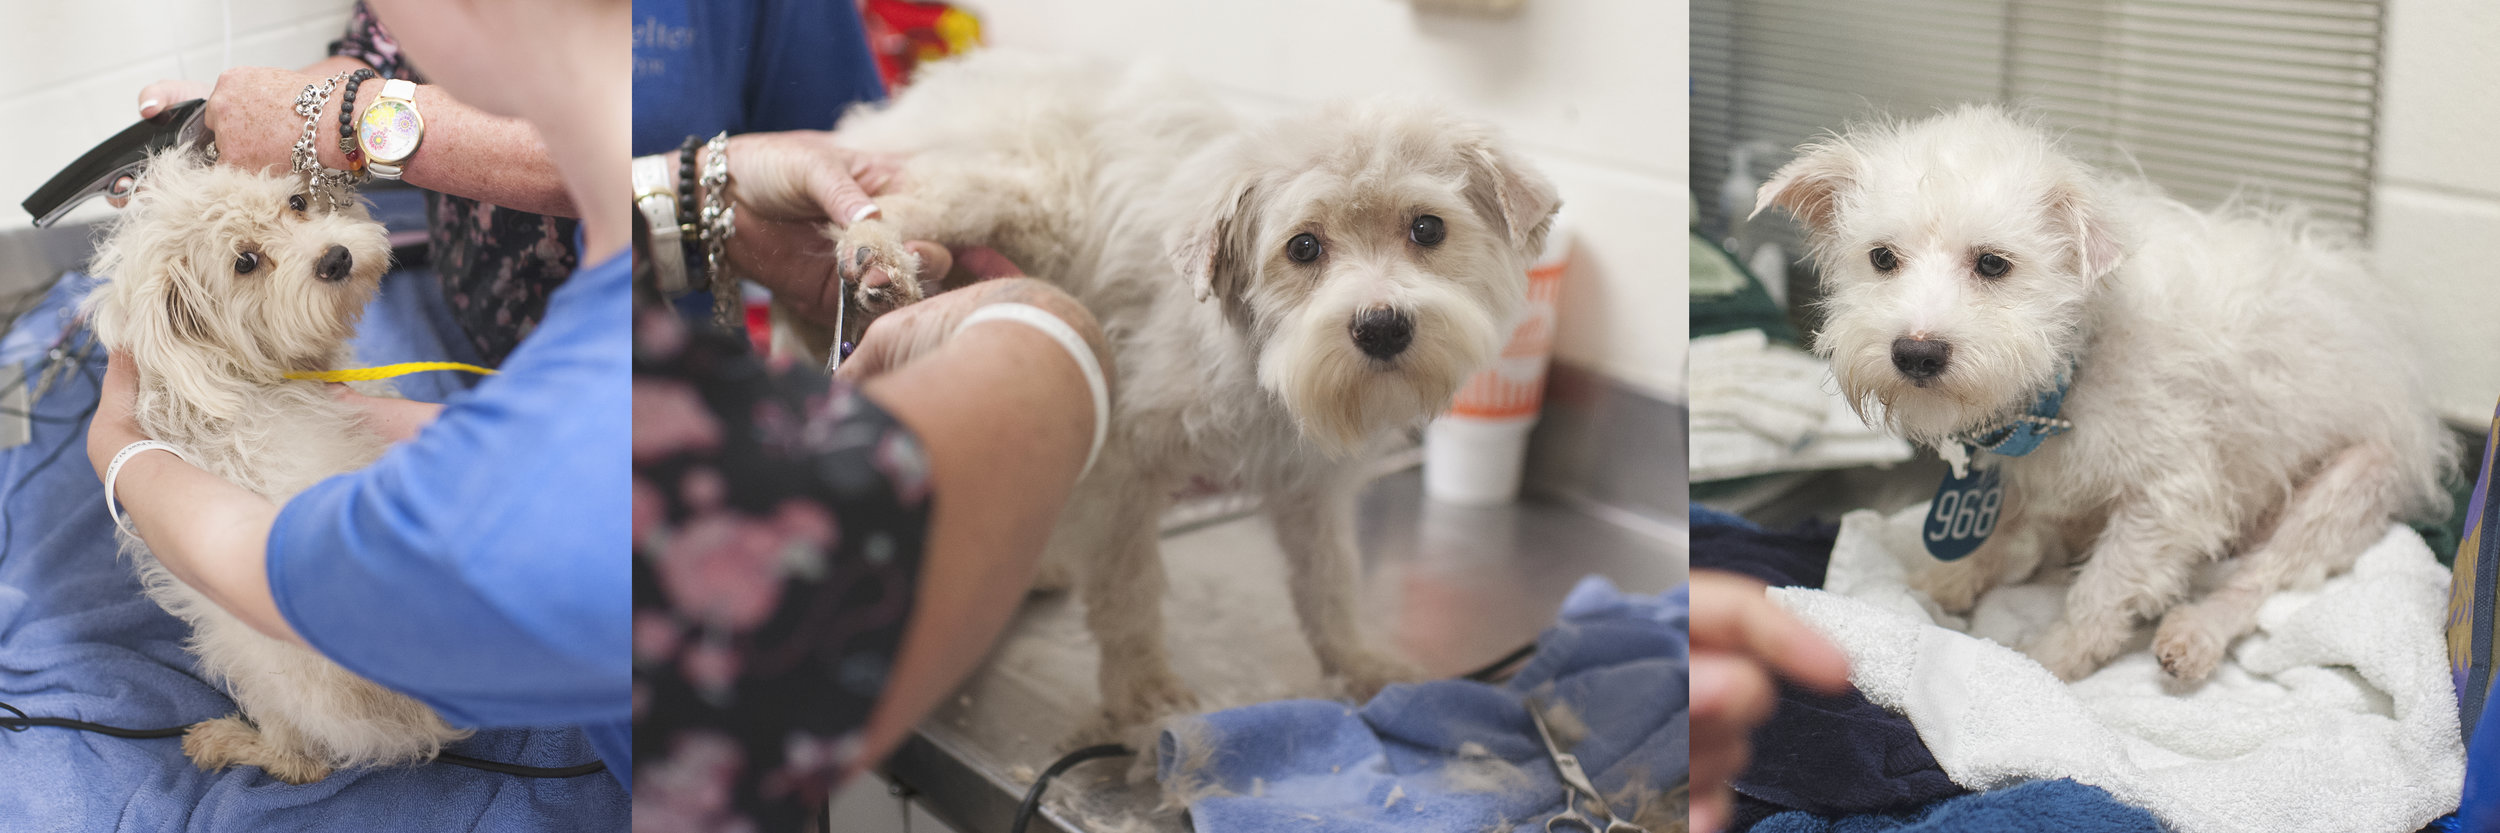 Darci and Melissa grooming and bathing a dog at  Harris County Veterinary Public Health .